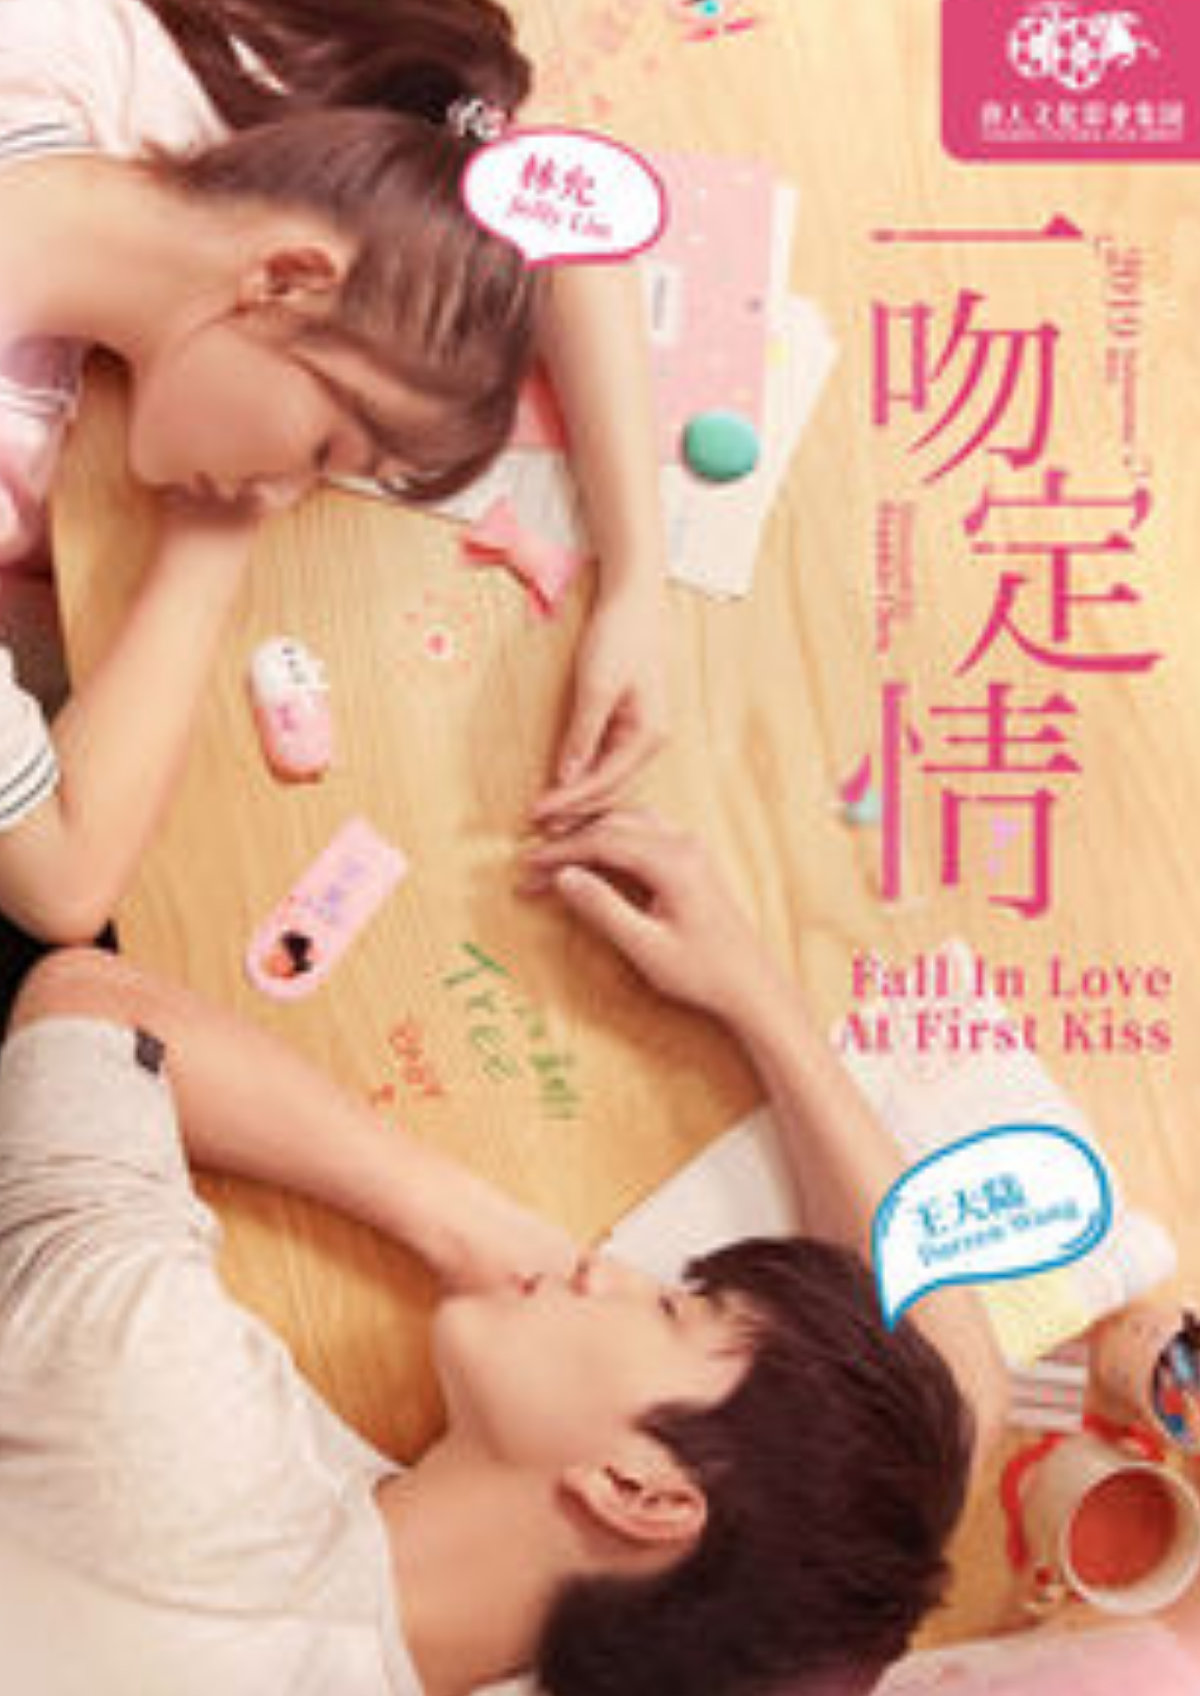 'Fall In Love At First Kiss (Sealed With A Kiss)' movie poster